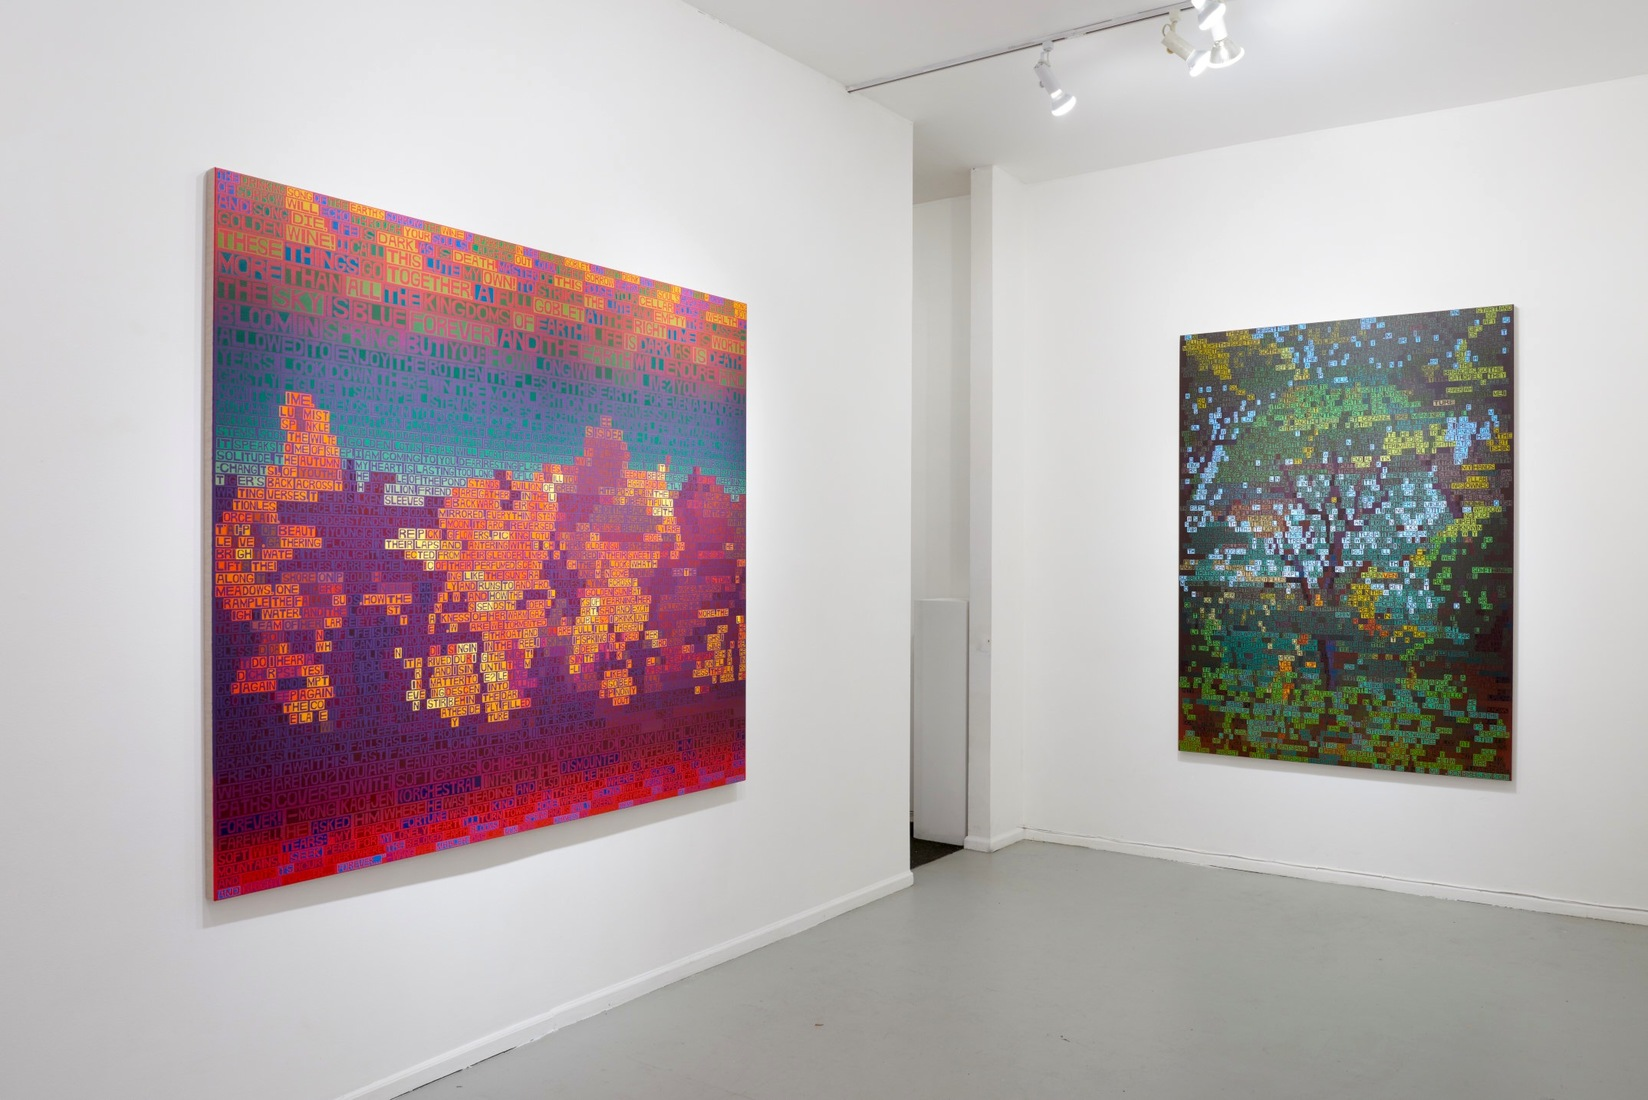 Paintings Song of the Earth (installation view, Freight + Volume, NYC)